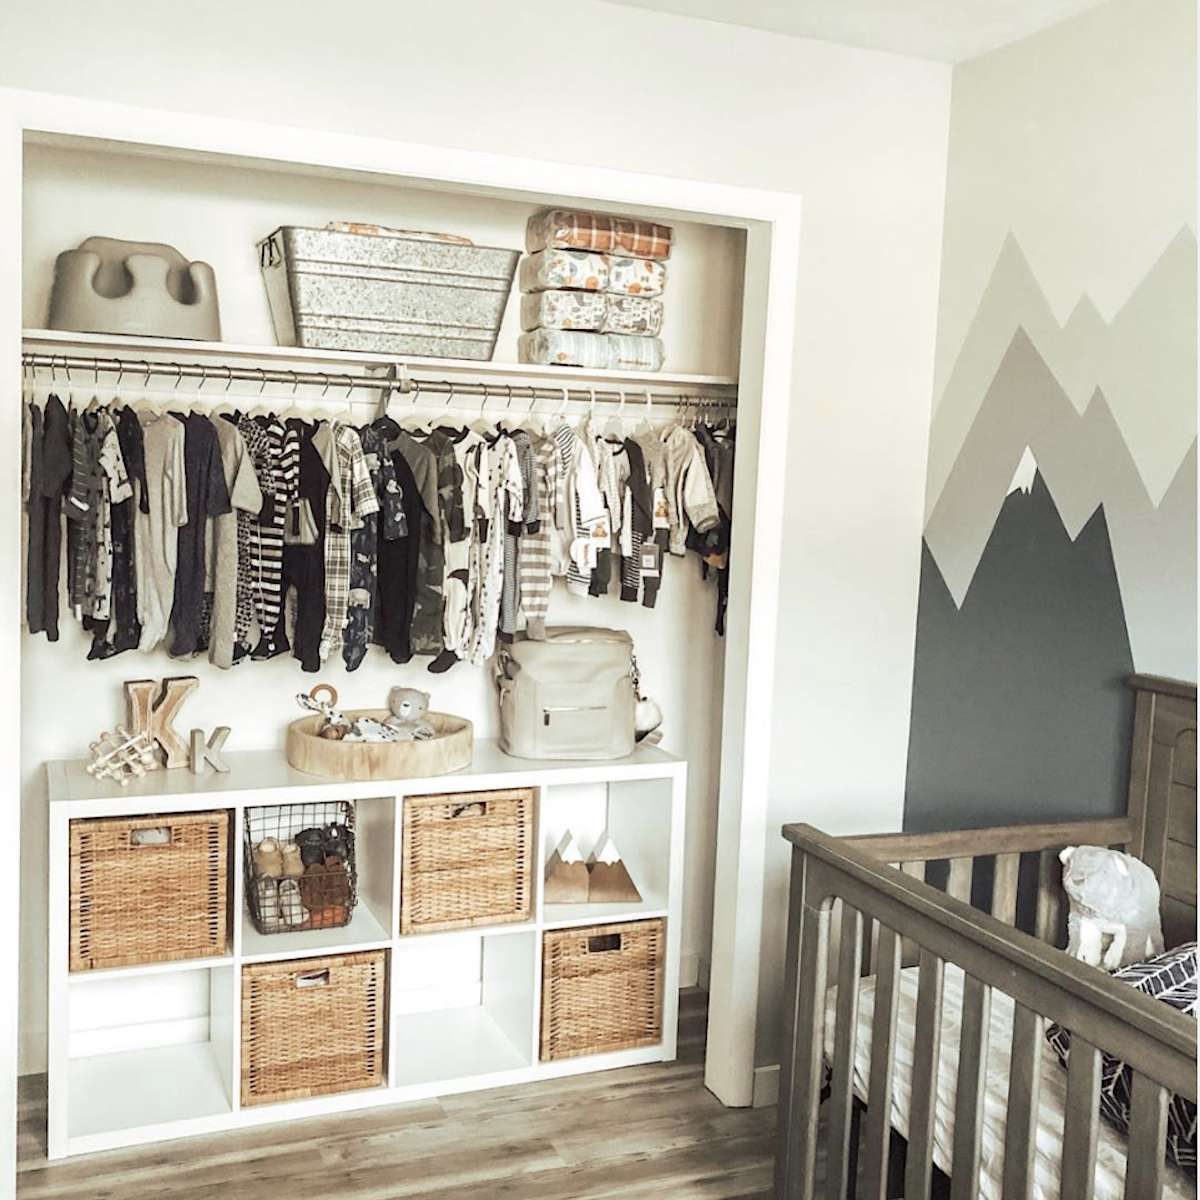 nursery with closet that has no doors, shelving storage on top and storage unit with wicker baskets below